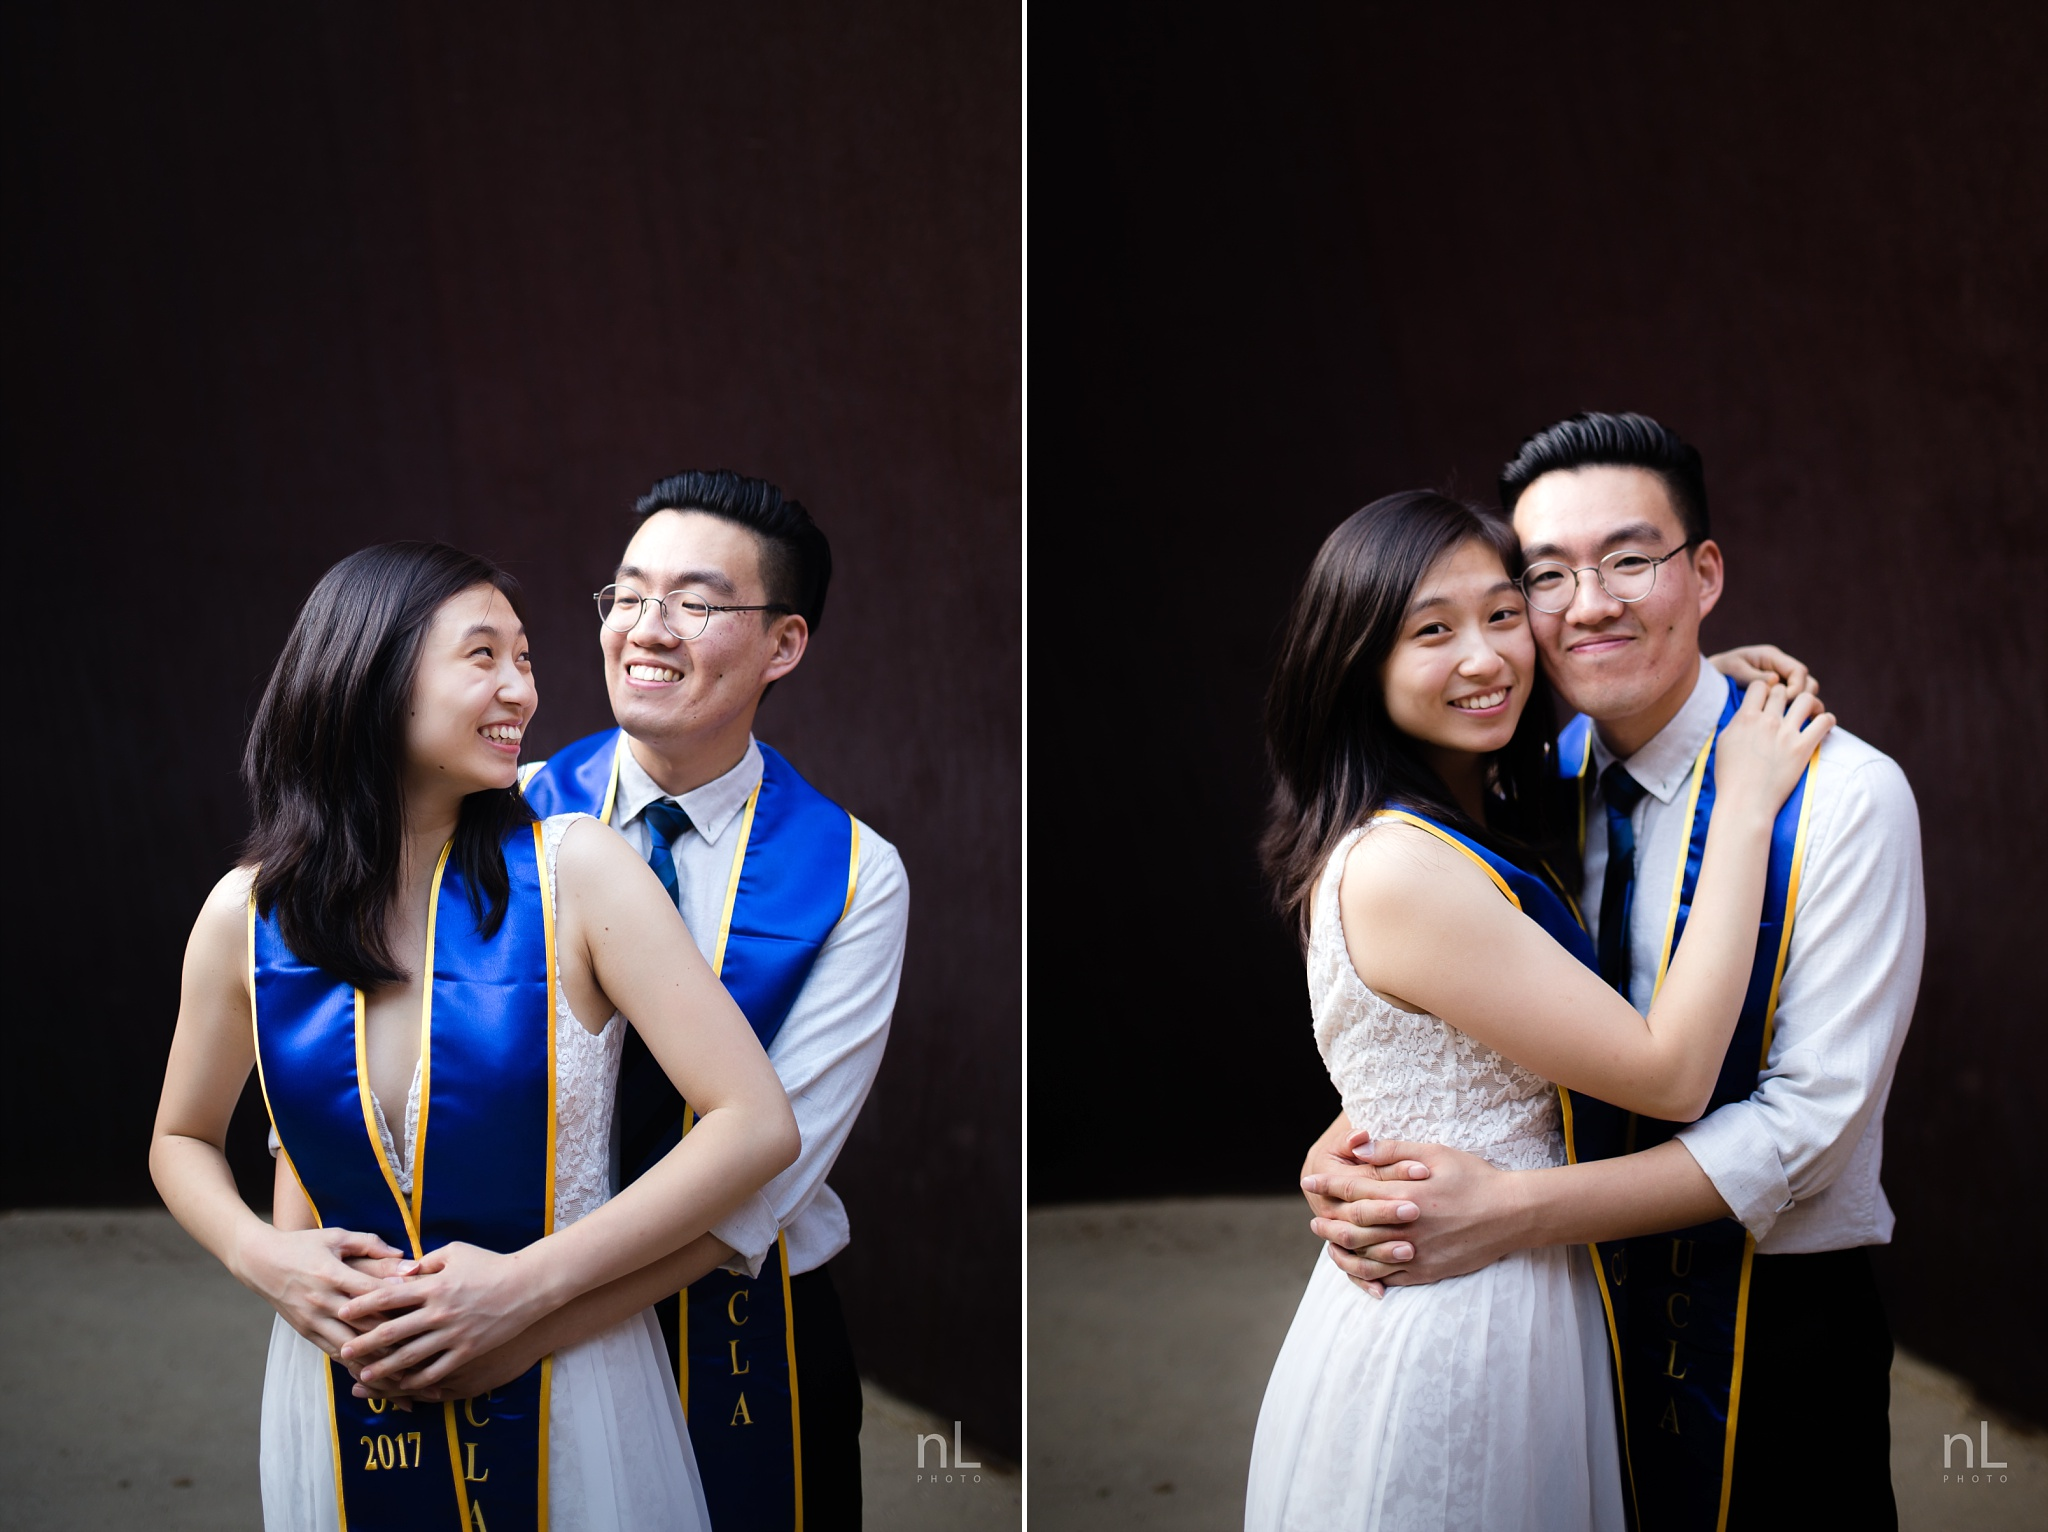 los angeles ucla senior graduation portrait cute couple smiling and hugging in love